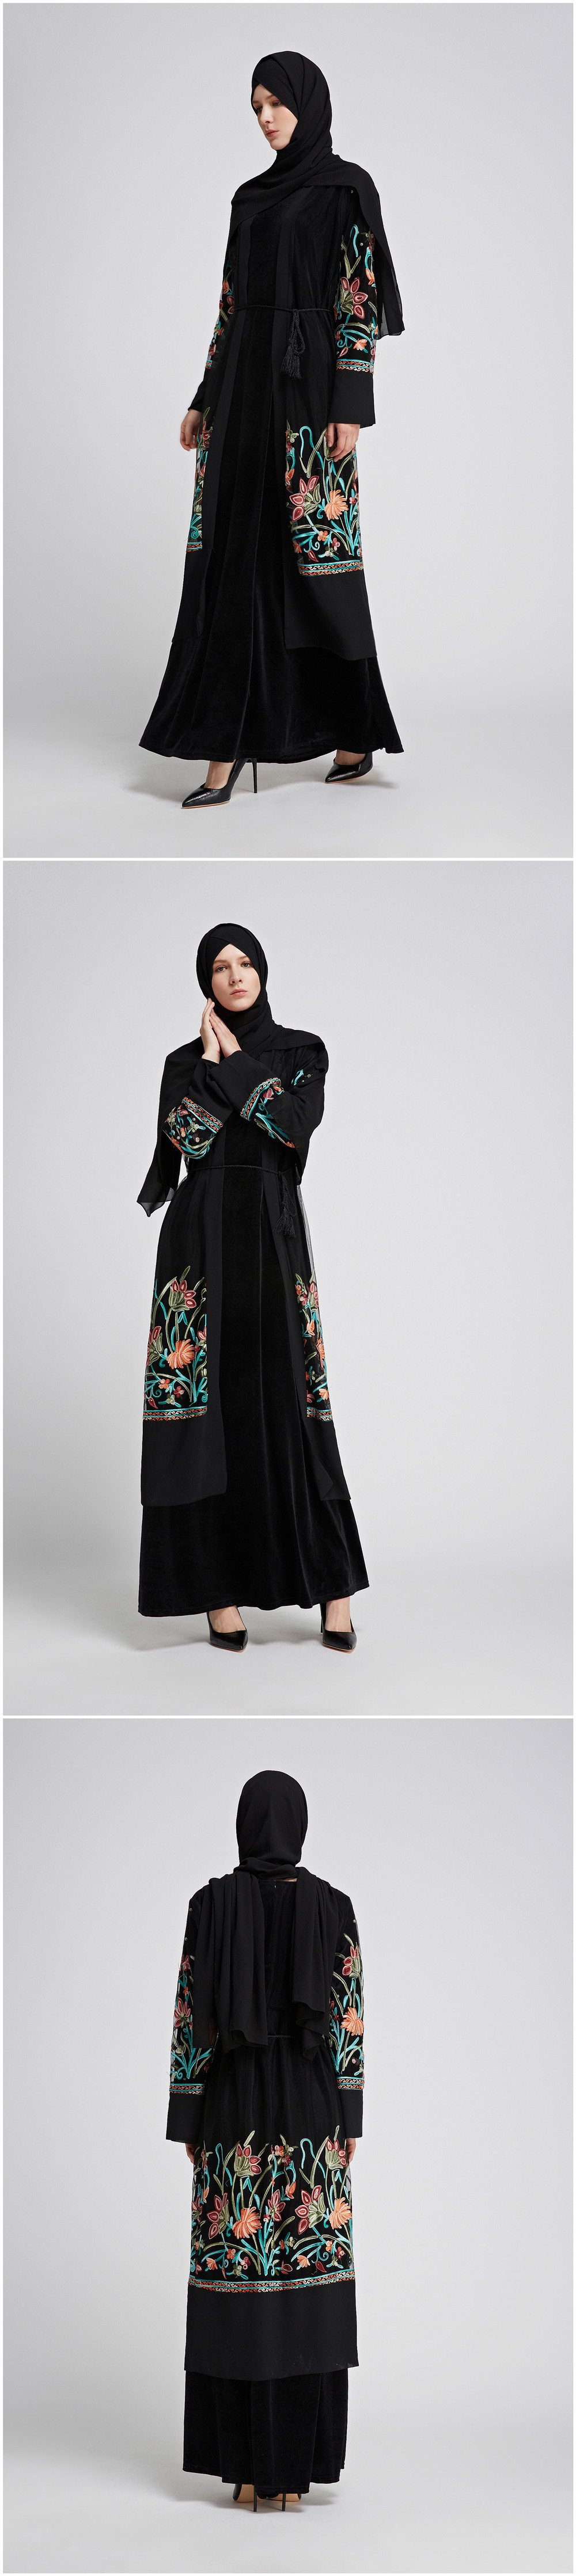 Black Abayas For Women Dubai Coat Muslim Caftan Flowers Embroidery Long Cardigan Bolero Hijab Islamic Clothing Headscarf 2019